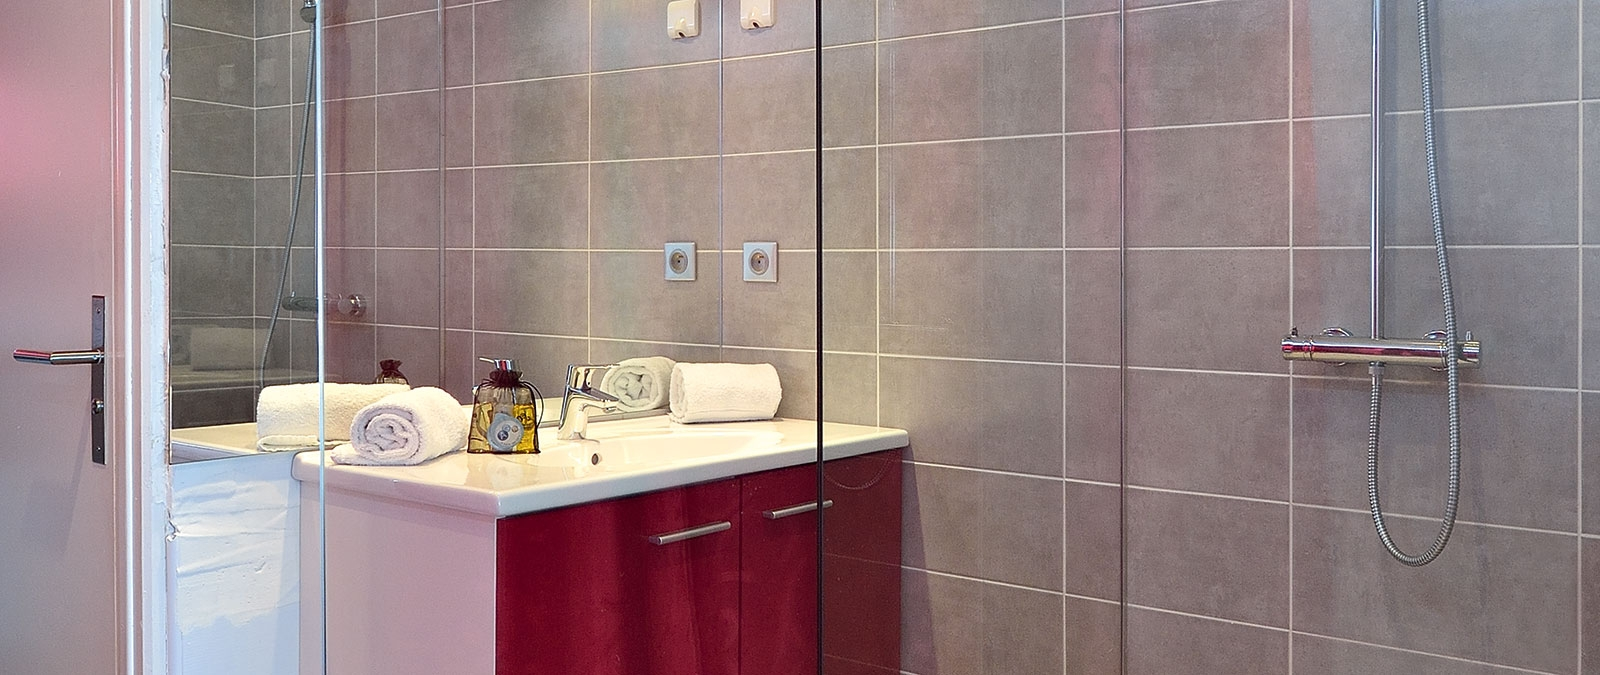 Bathroom with shower Grenadine naturist studio flat for rent